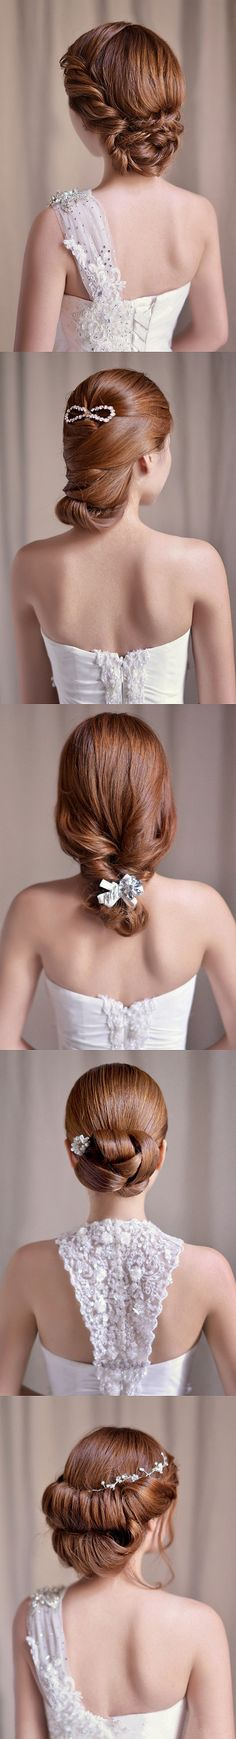 Different hairstyles for bridesmaids